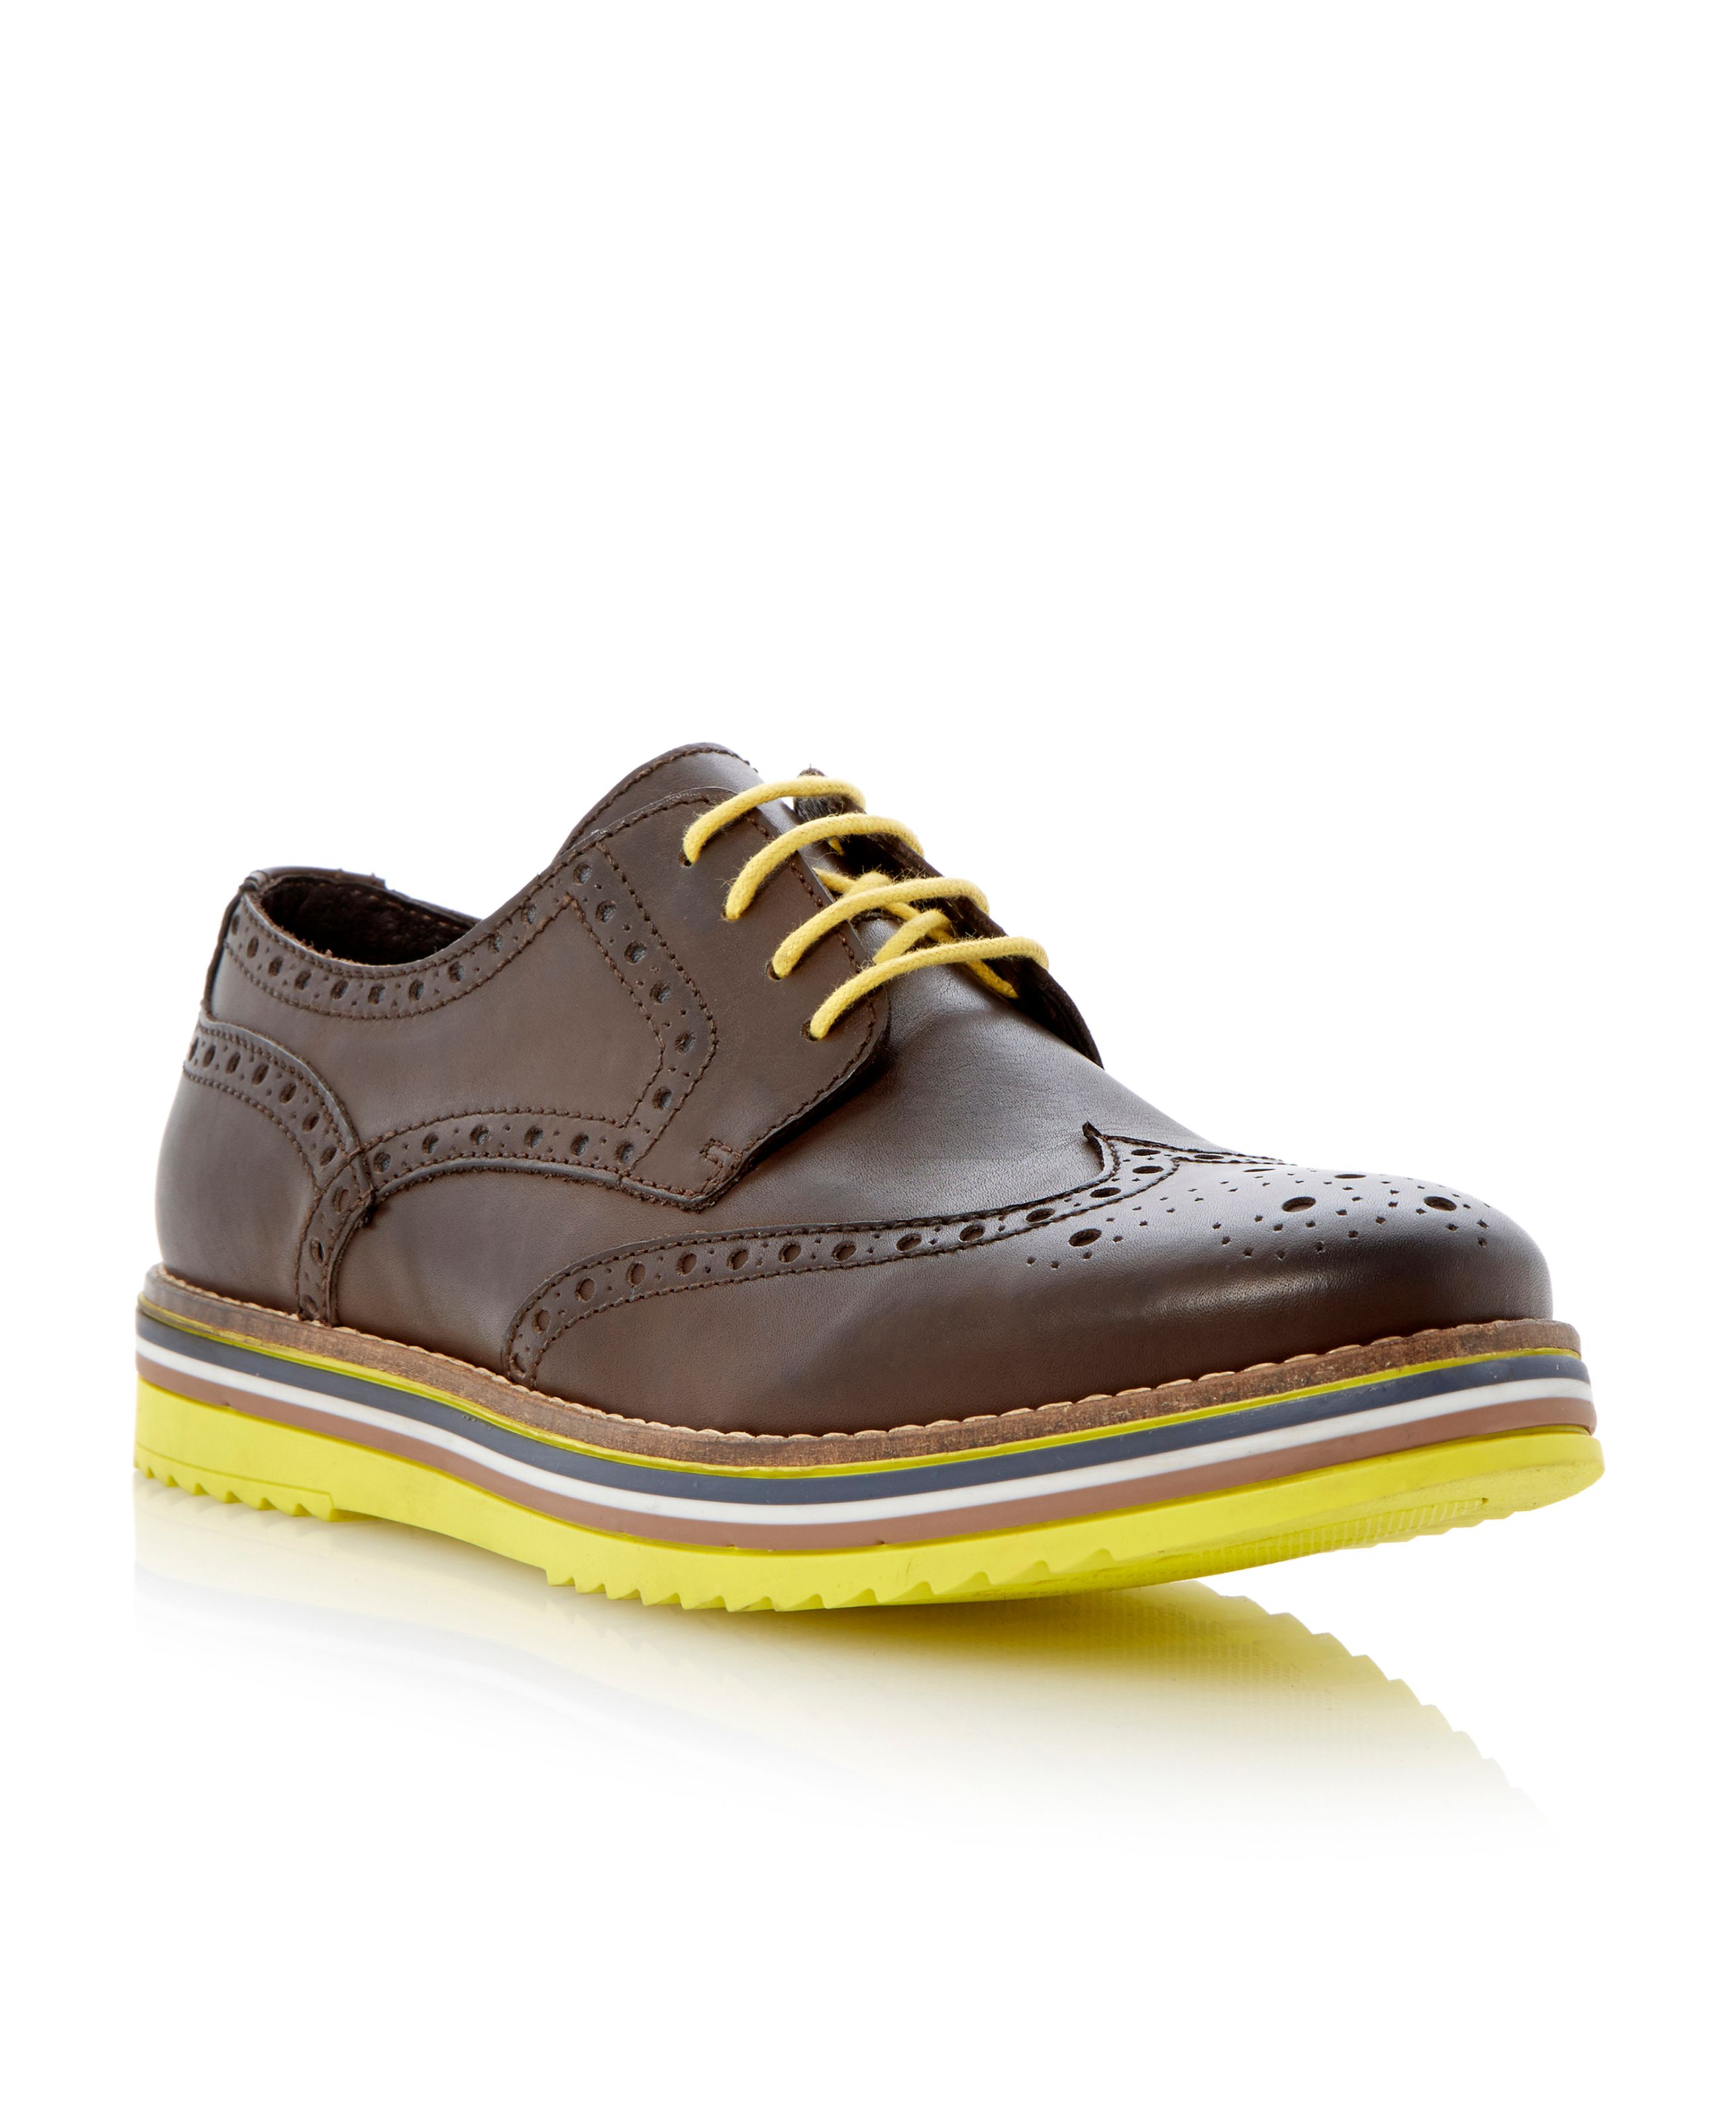 Bumbled leather contrasting sole brogue